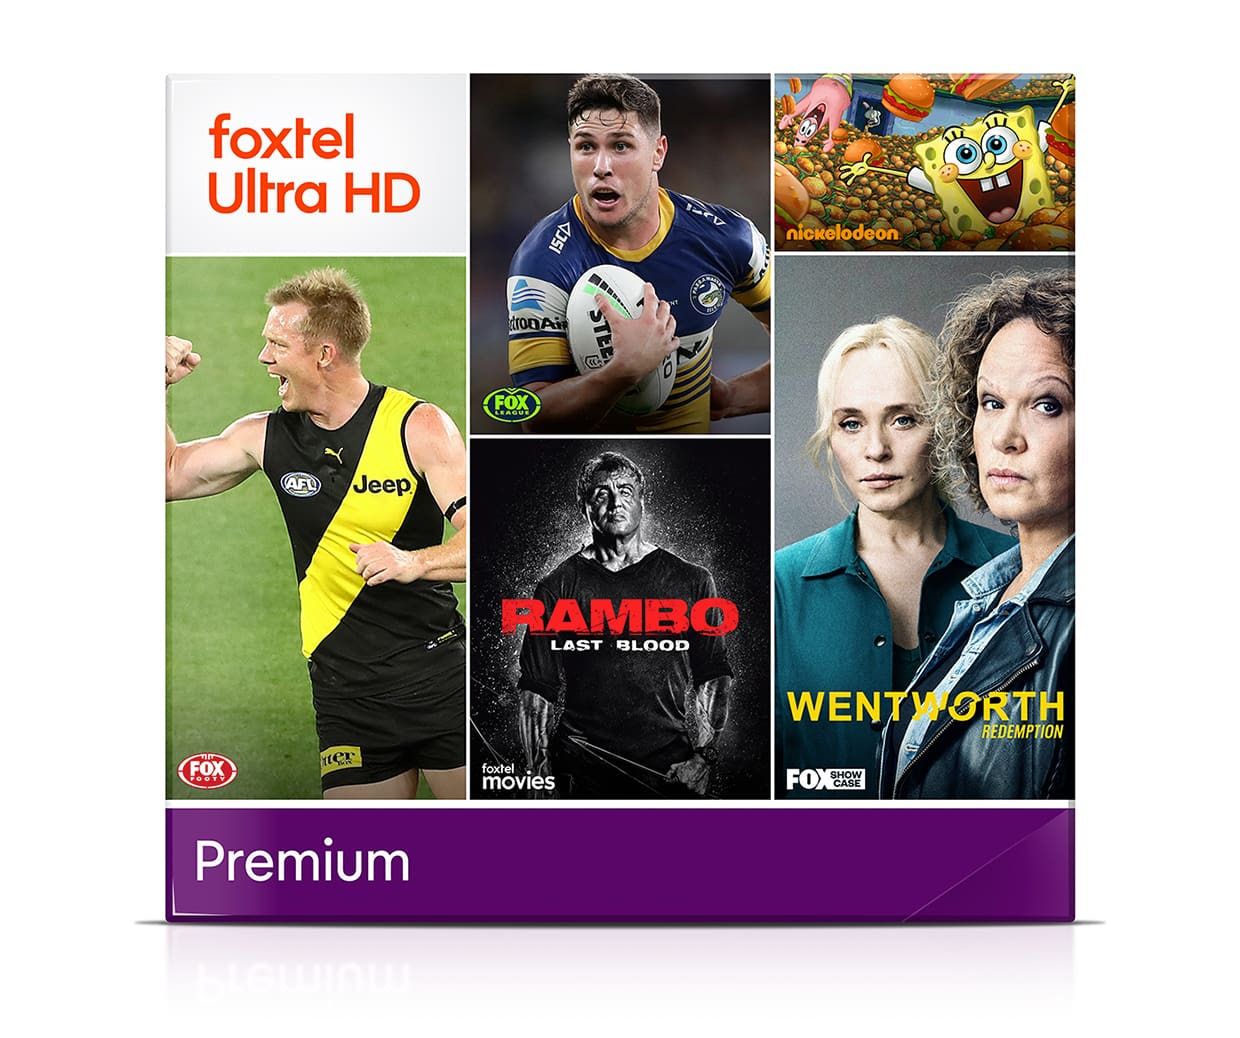 Watch sports, movies, kids shows and over 50 channels of entertainment with Premium